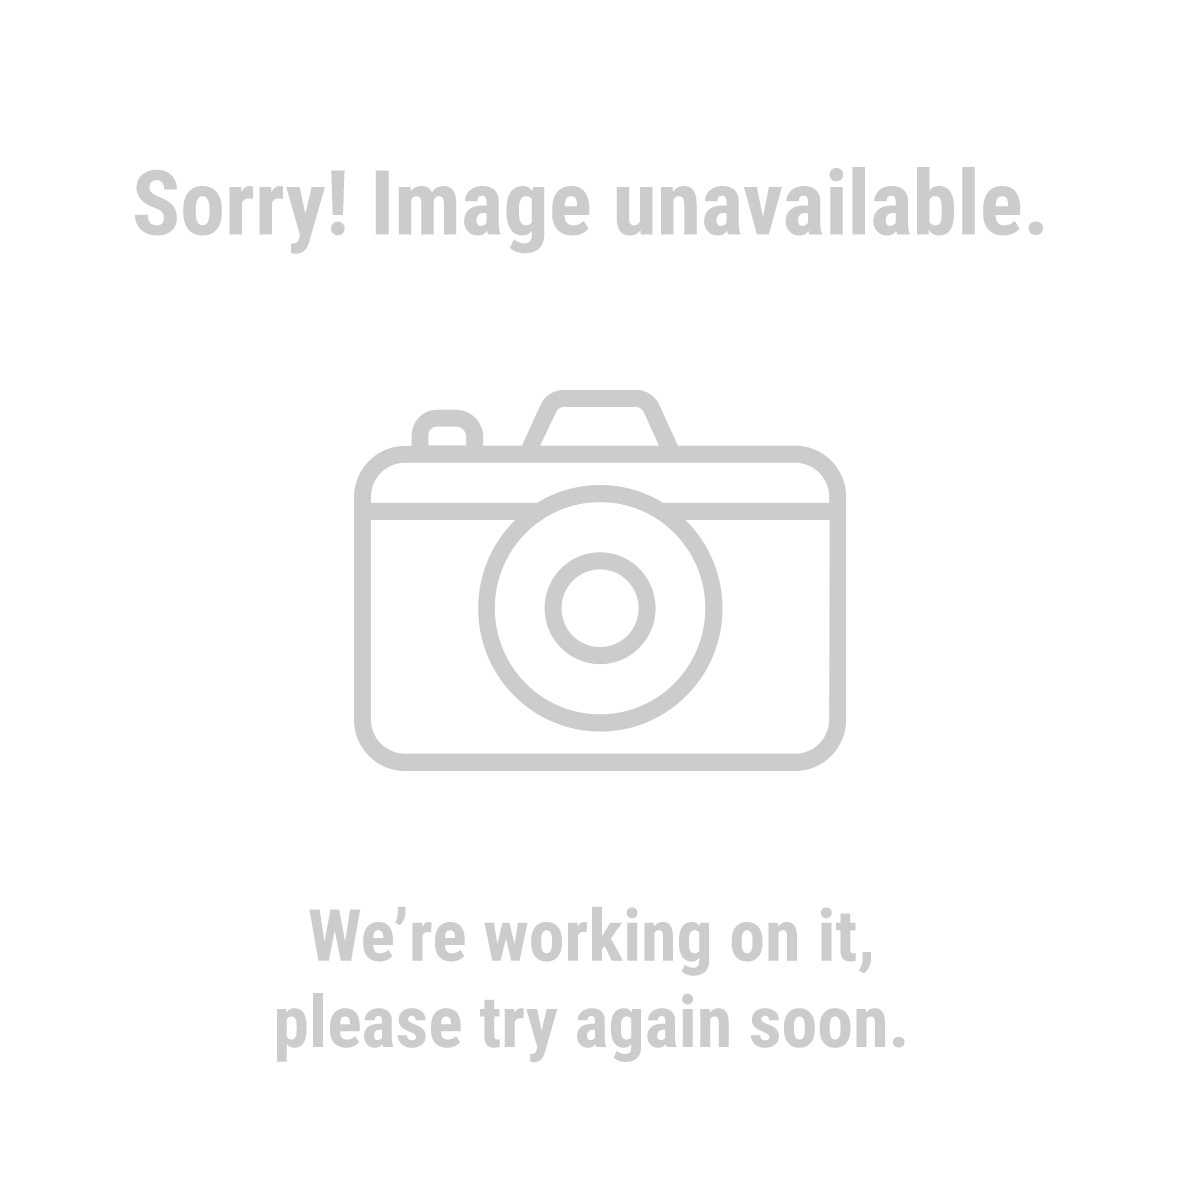 Cen-Tech 92514 Electronic Freon and Halogen Leak Detector